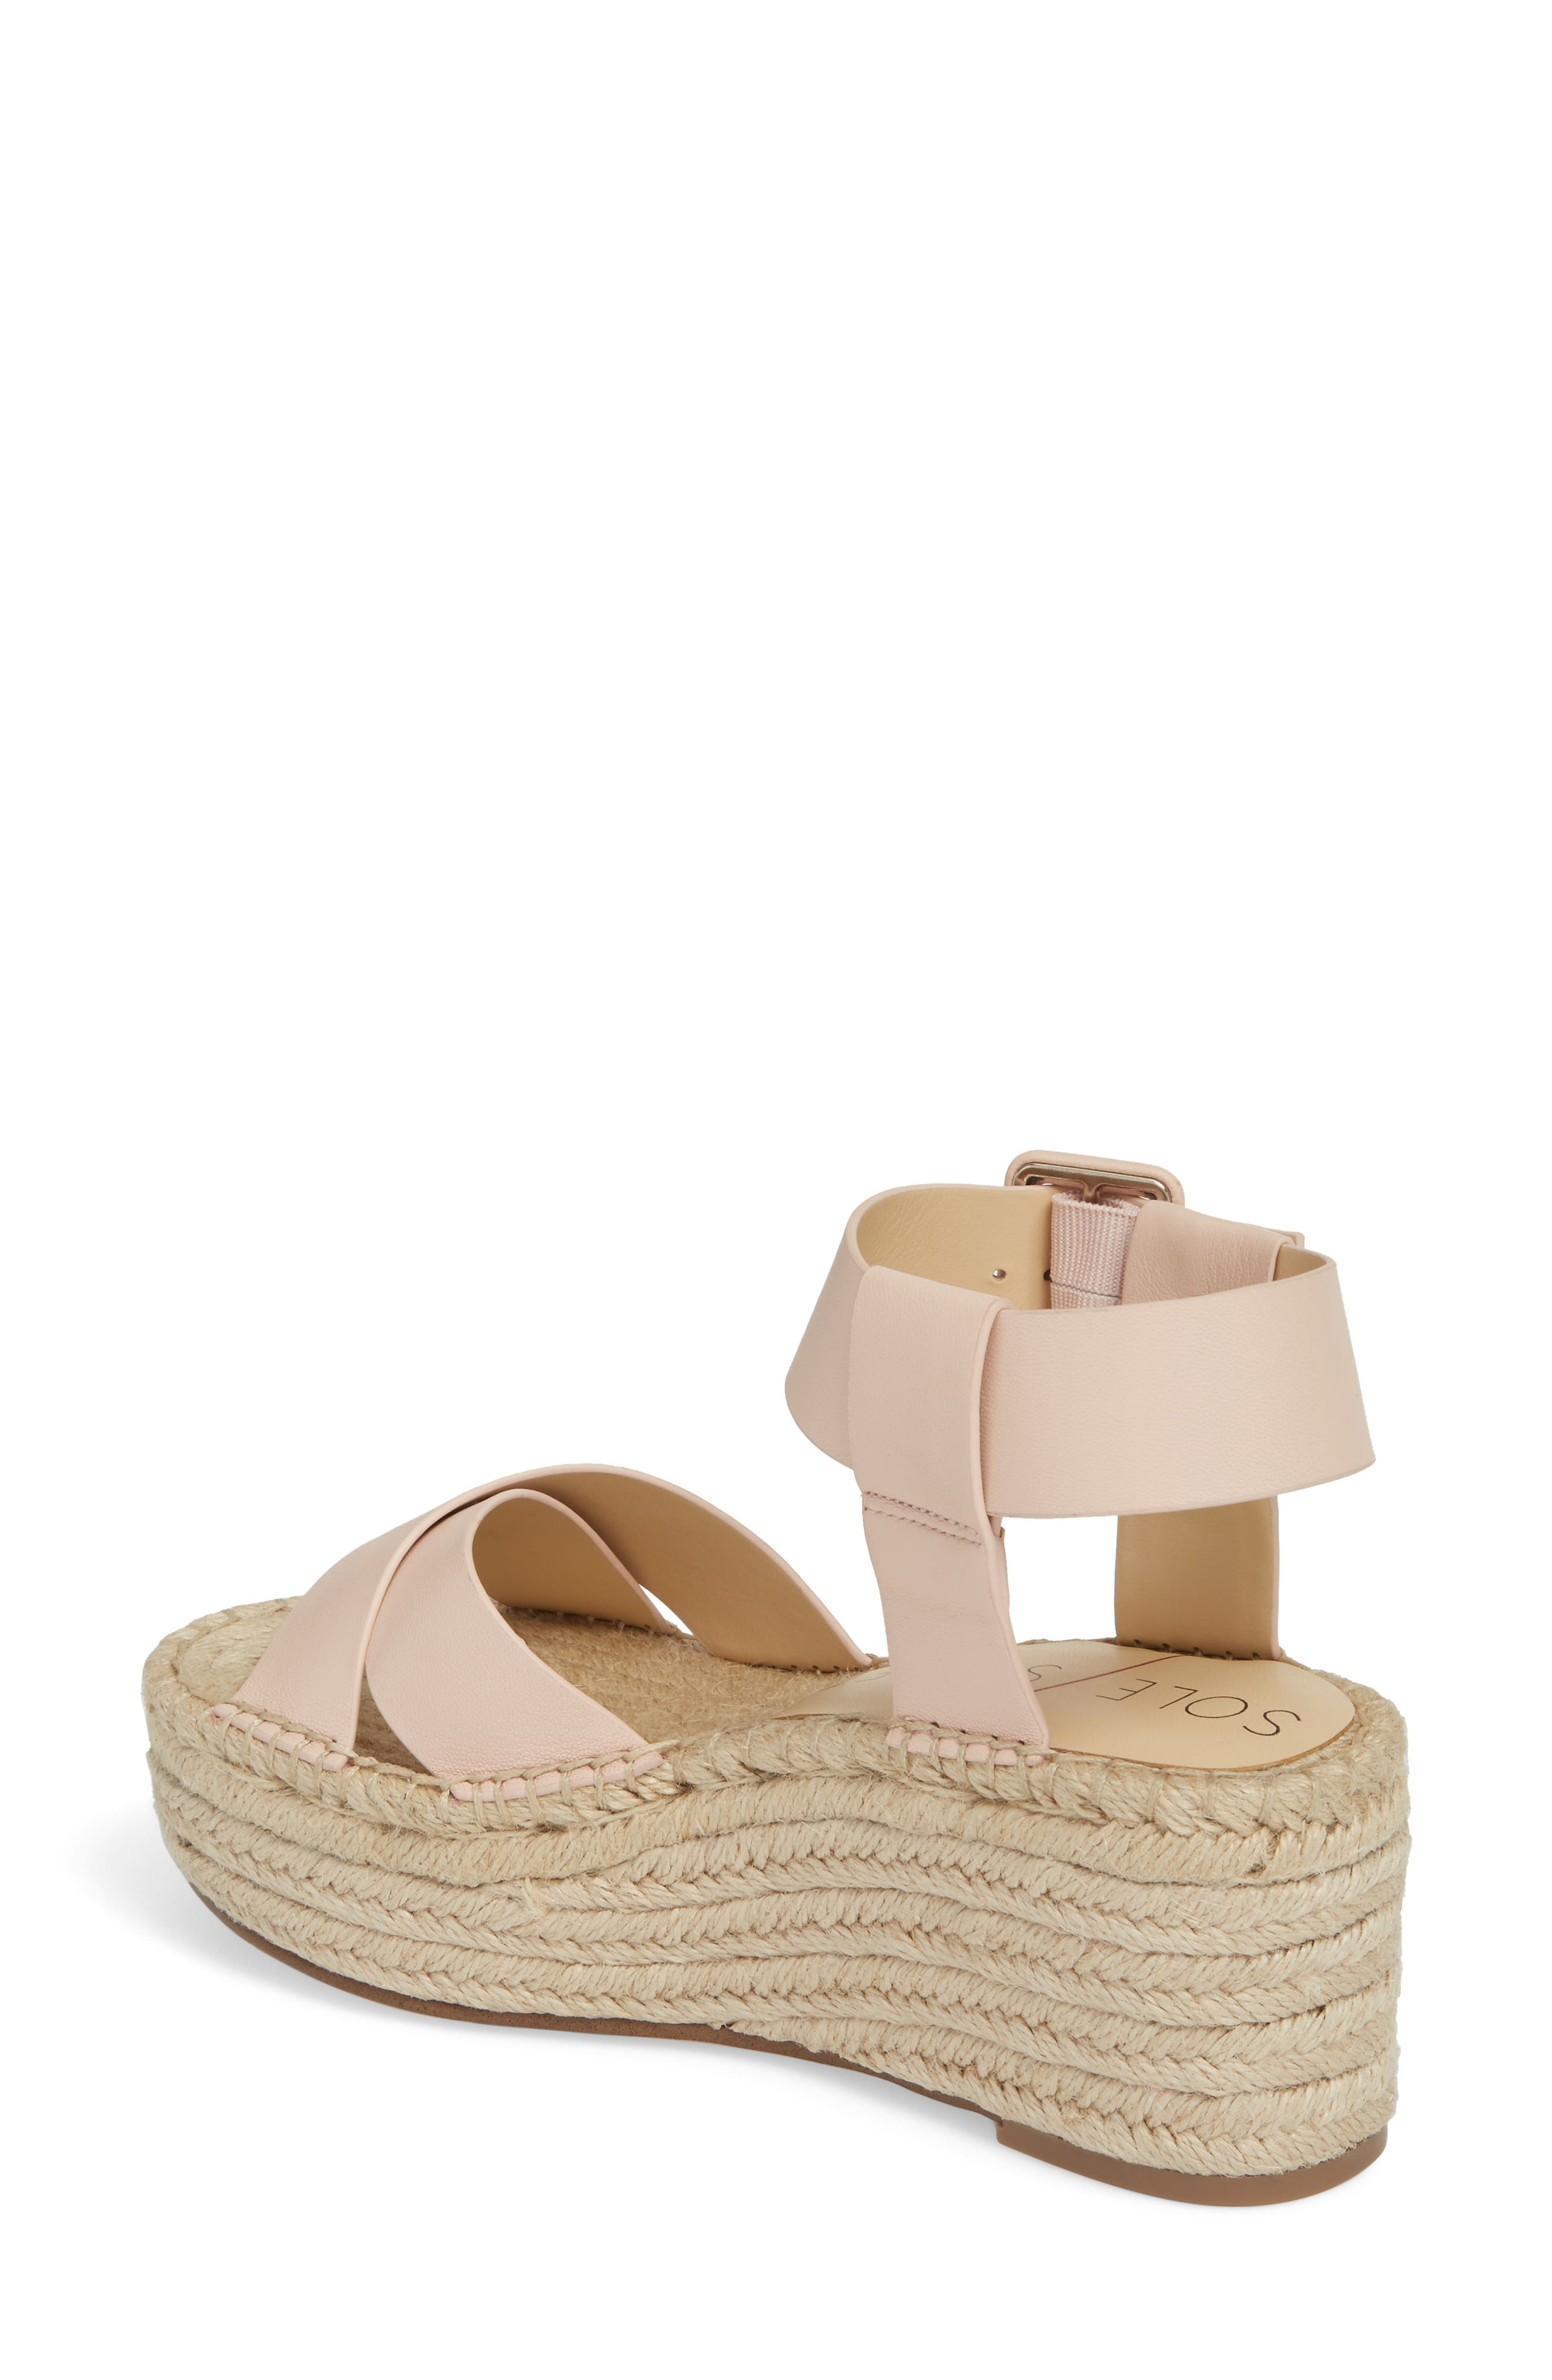 'Audrina' Platform Espadrille Sandal,                             Alternate thumbnail 2, color,                             Rose Blush